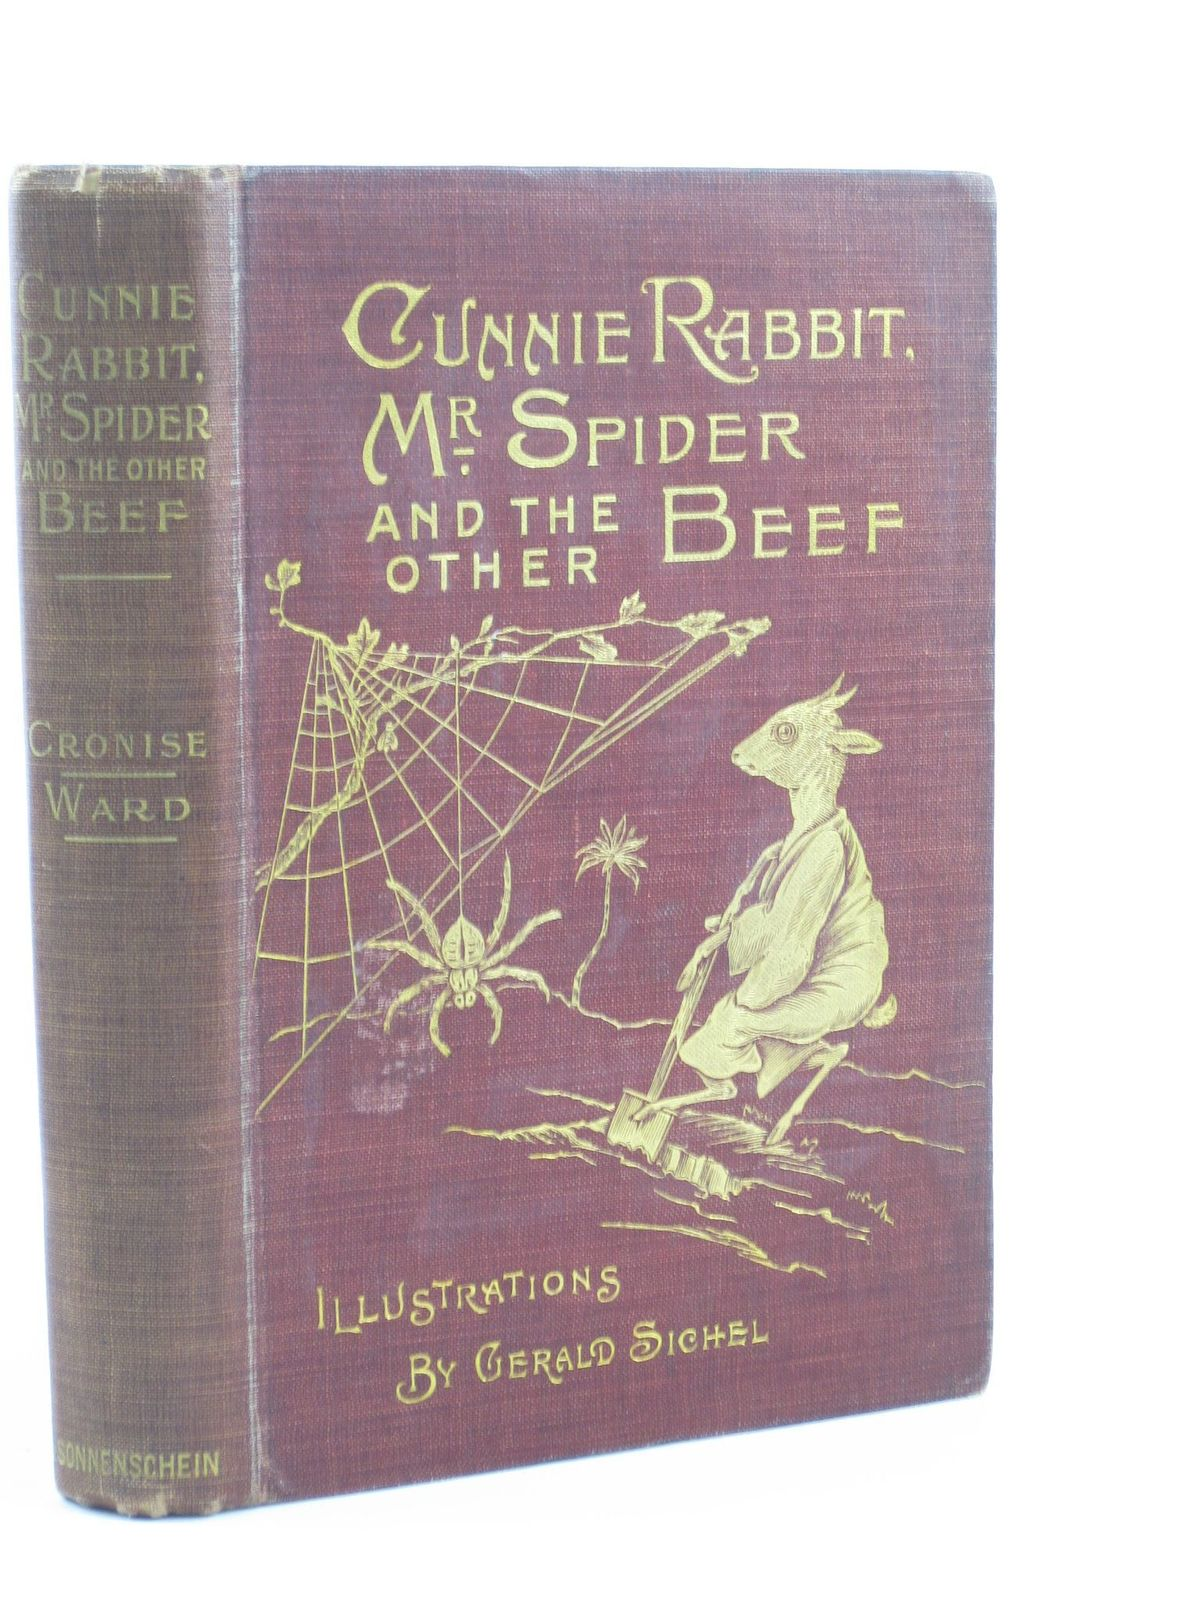 Photo of CUNNIE RABBIT, MR. SPIDER AND THE OTHER BEEF written by Cronise, Florence M. Ward, Henry W. illustrated by Sichel, Gerald published by Swan Sonnenschein & Co. Ltd. (STOCK CODE: 1501742)  for sale by Stella & Rose's Books